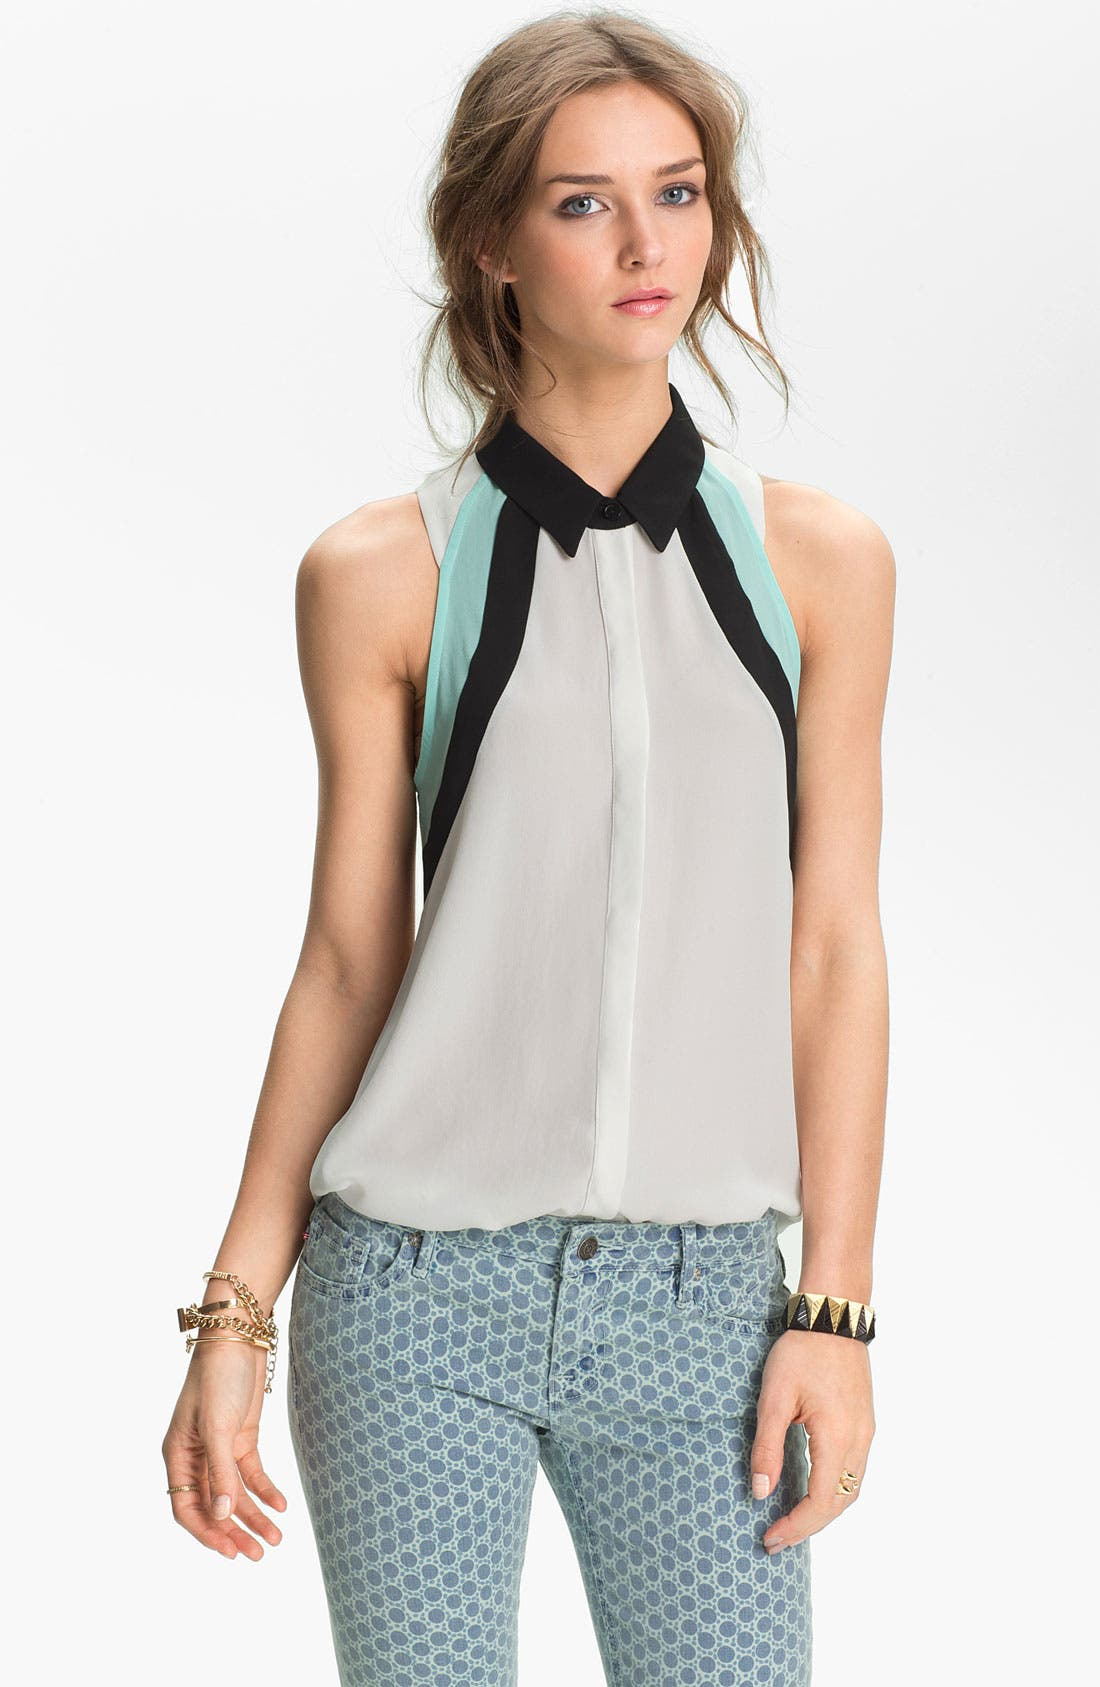 Alternate Image 1 Selected - Lush Colorblock Sleeveless Chiffon Shirt (Juniors)